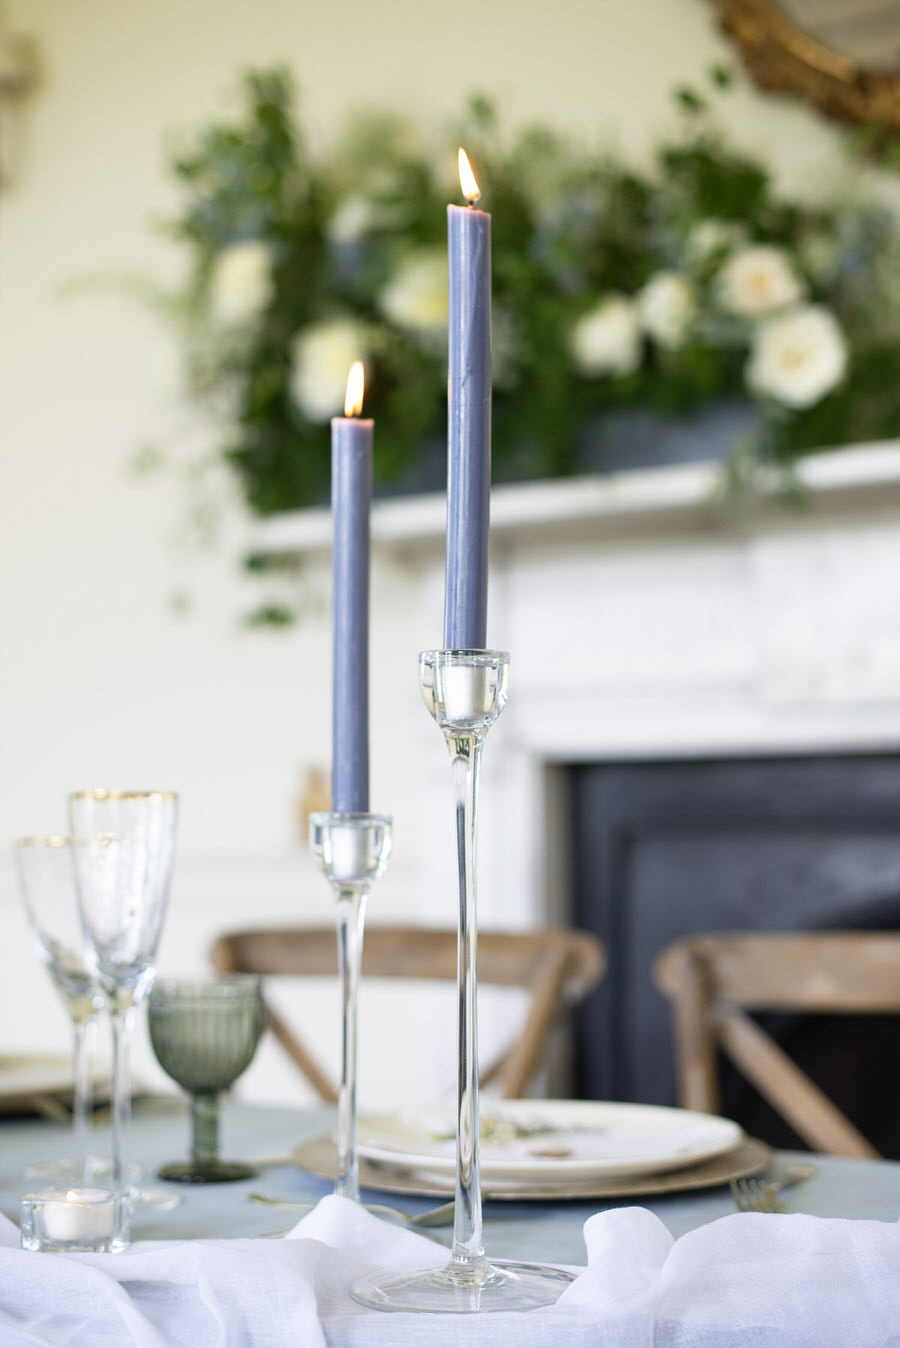 Pynes House wedding styling ideas with Ailsa Munro, Sarah Shuttle and Lottie Ettling PHotography (31)